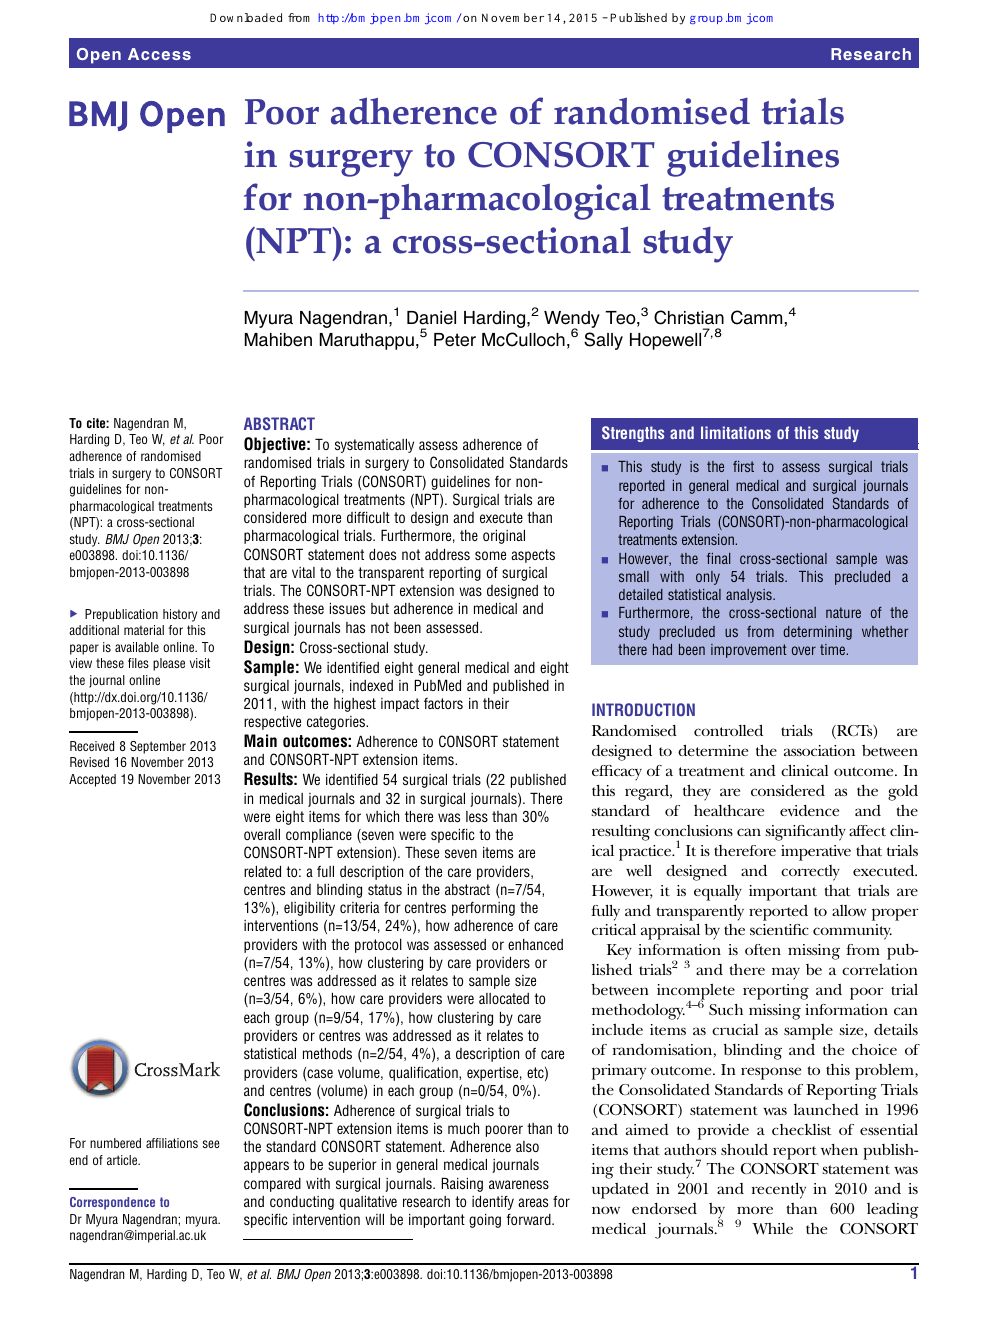 Poor Adherence Of Randomised Trials In Surgery To Consort Guidelines For Non Pharmacological Treatments Npt A Cross Sectional Study Topic Of Research Paper In Clinical Medicine Download Scholarly Article Pdf And Read For